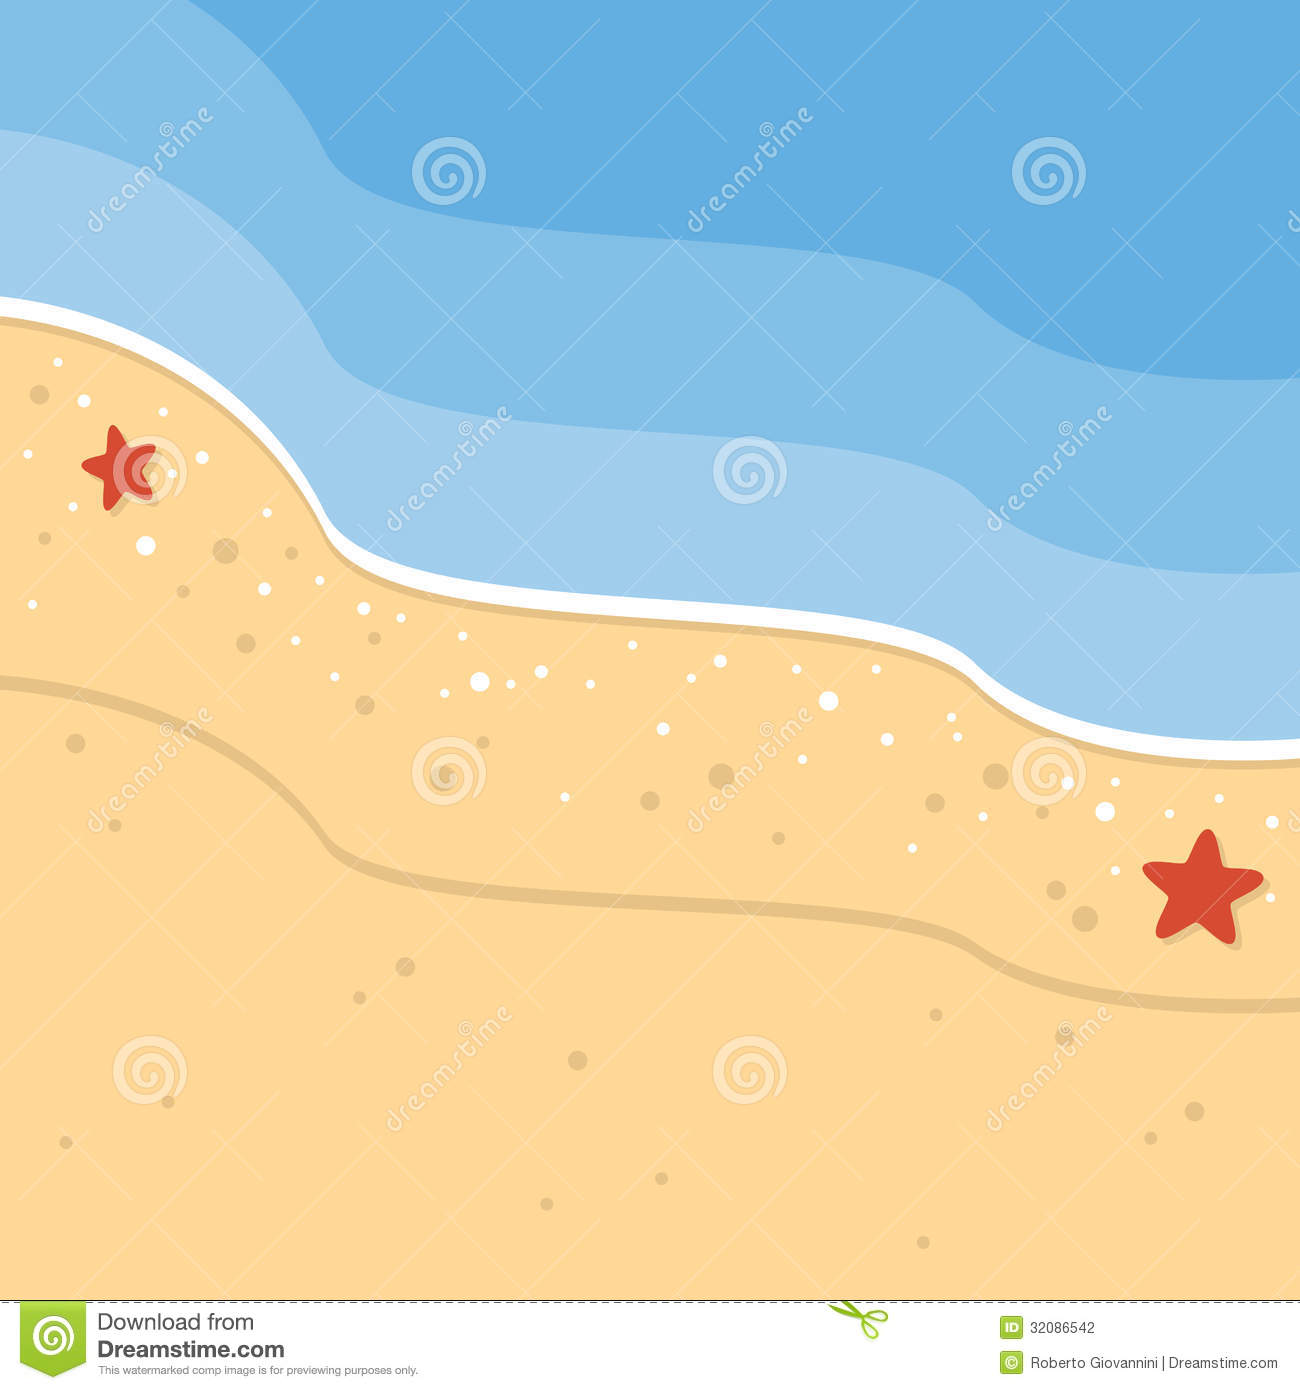 Sand clipart sand background. Sea